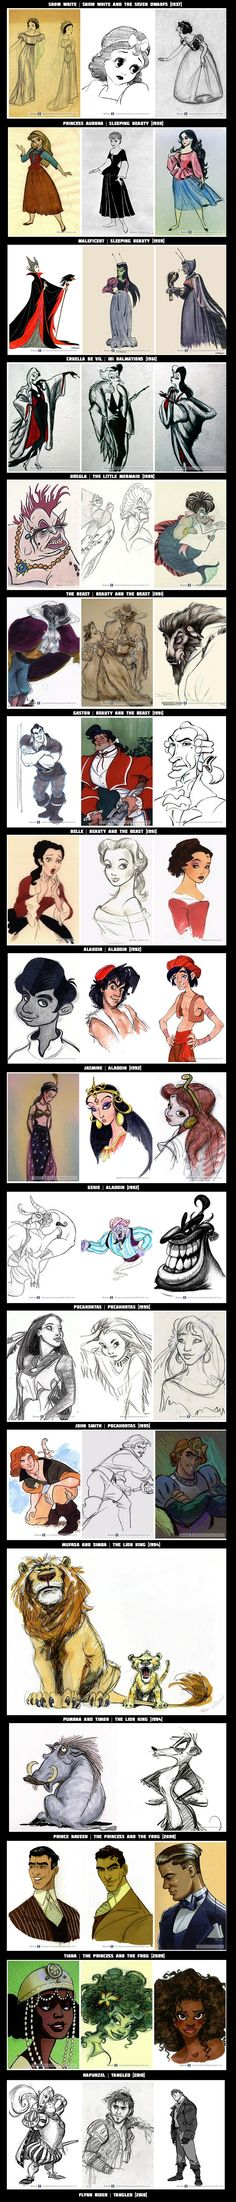 Disney concept art! So cool!